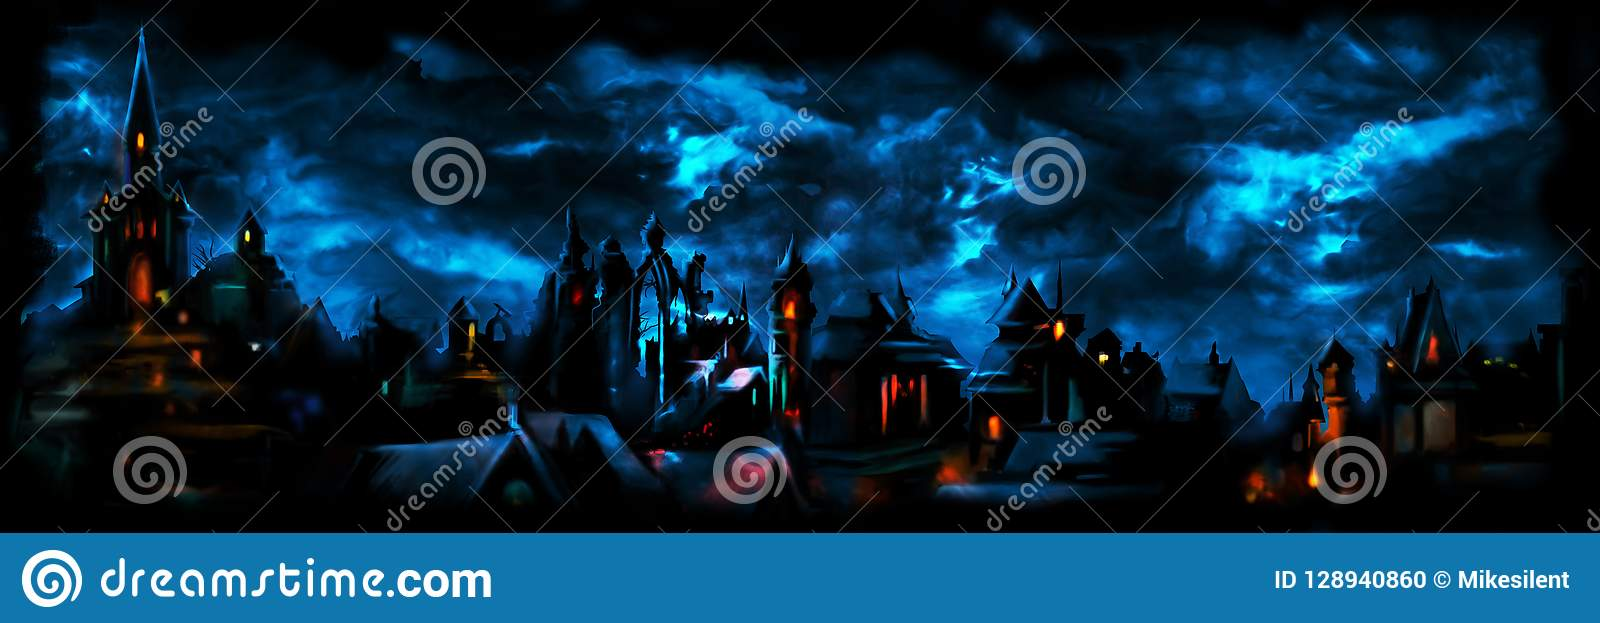 Medieval night town banner